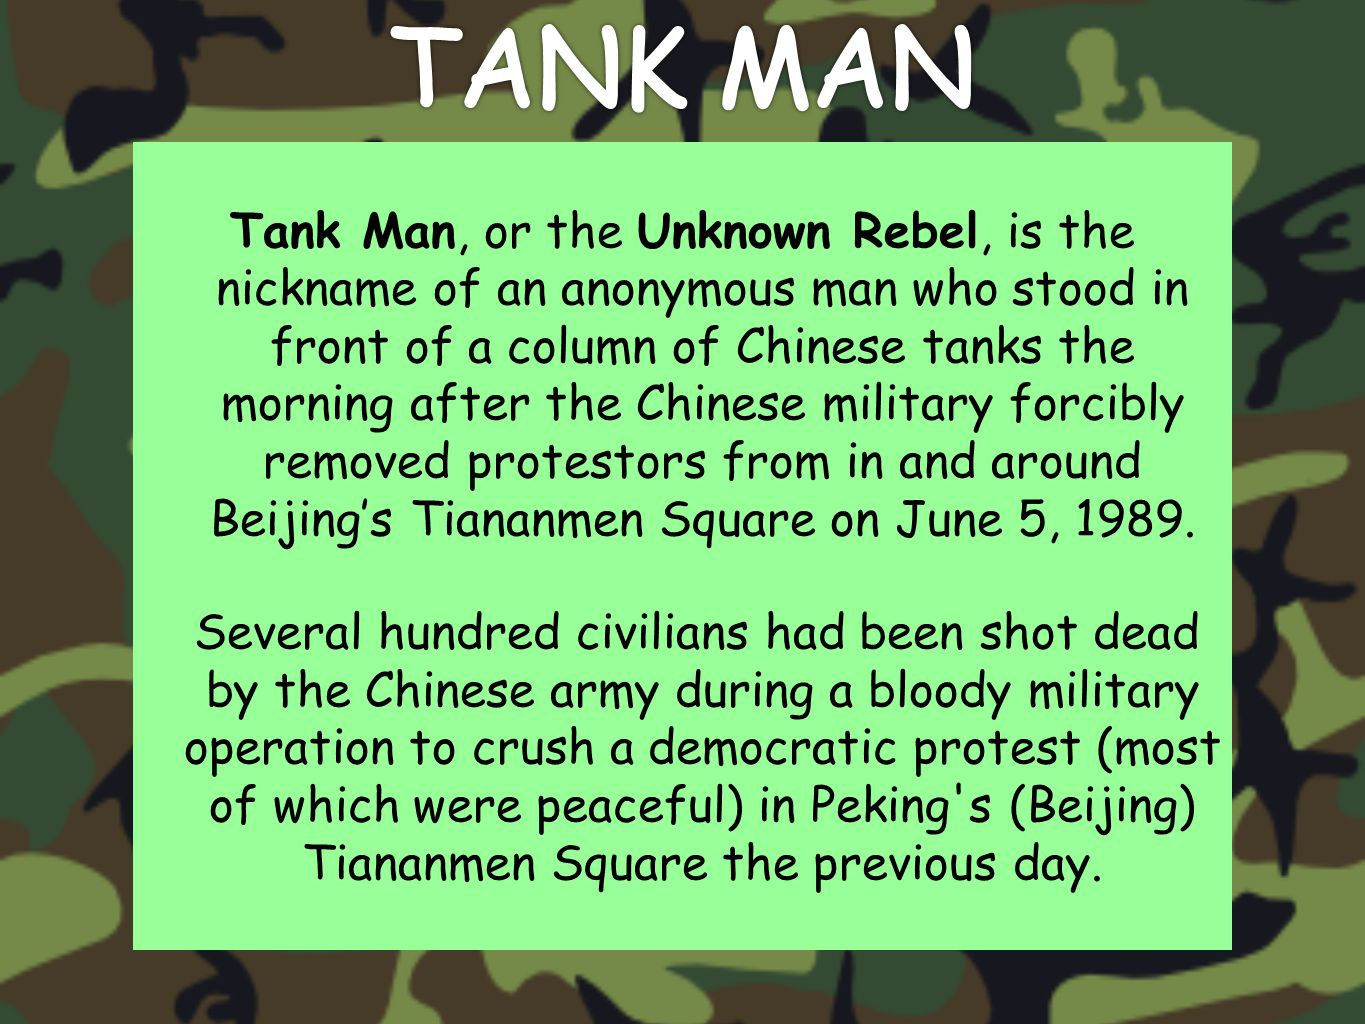 Tank Man, or the Unknown Rebel, is the nickname of an anonymous man who stood in front of a column of Chinese tanks the morning after the Chinese military forcibly removed protestors from in and around Beijing's Tiananmen Square on June 5, 1989.